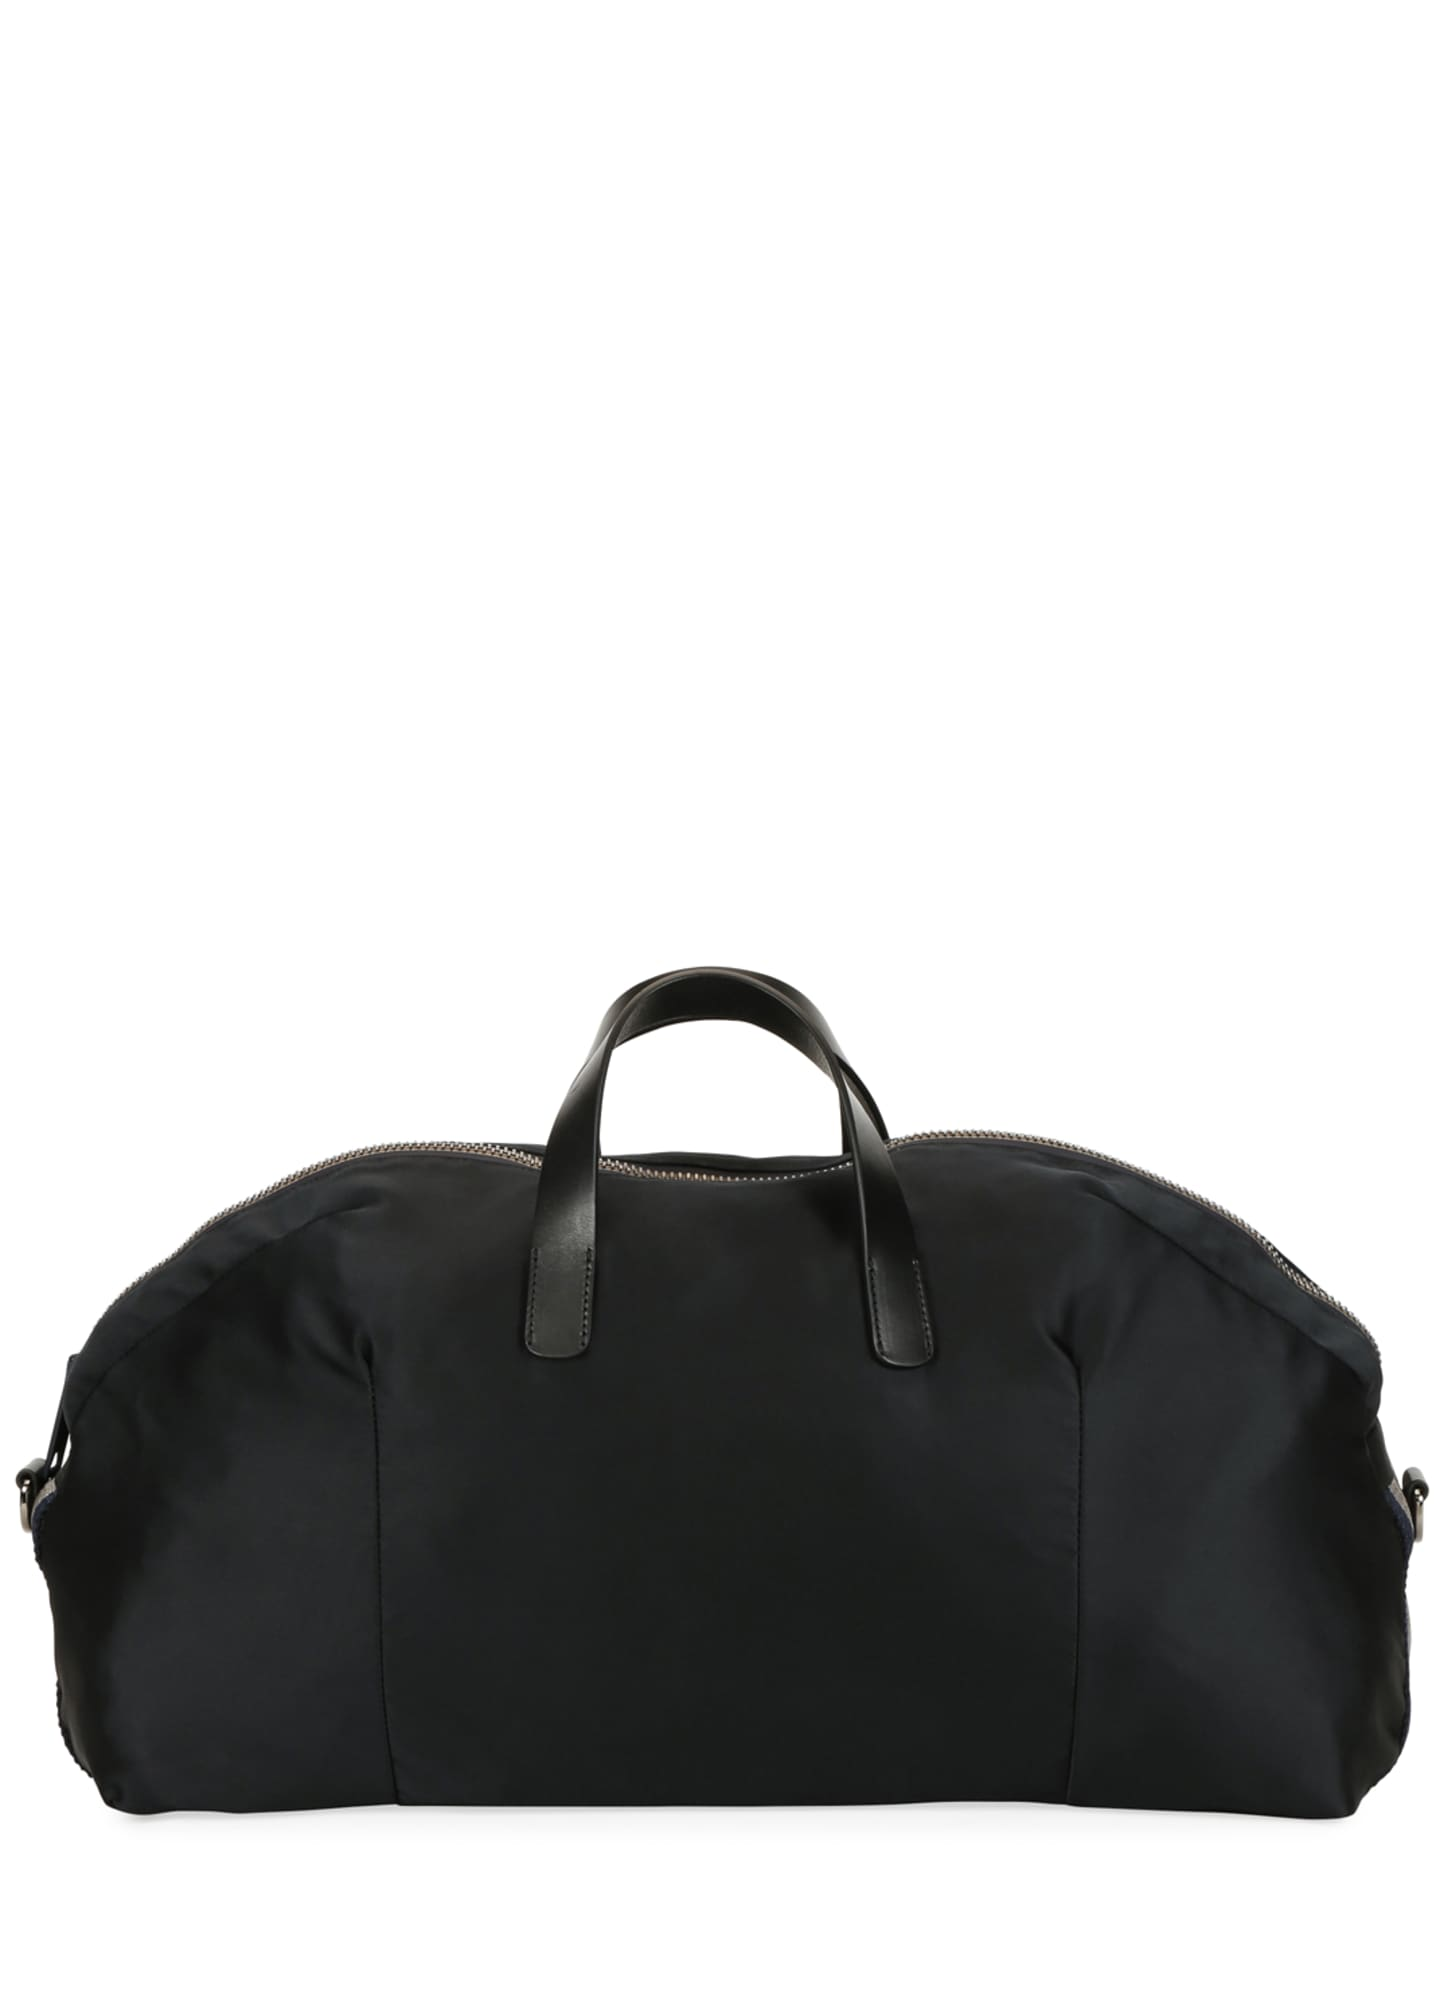 Image 4 of 4: Men's Nylon Carryall Duffel Bag, Black